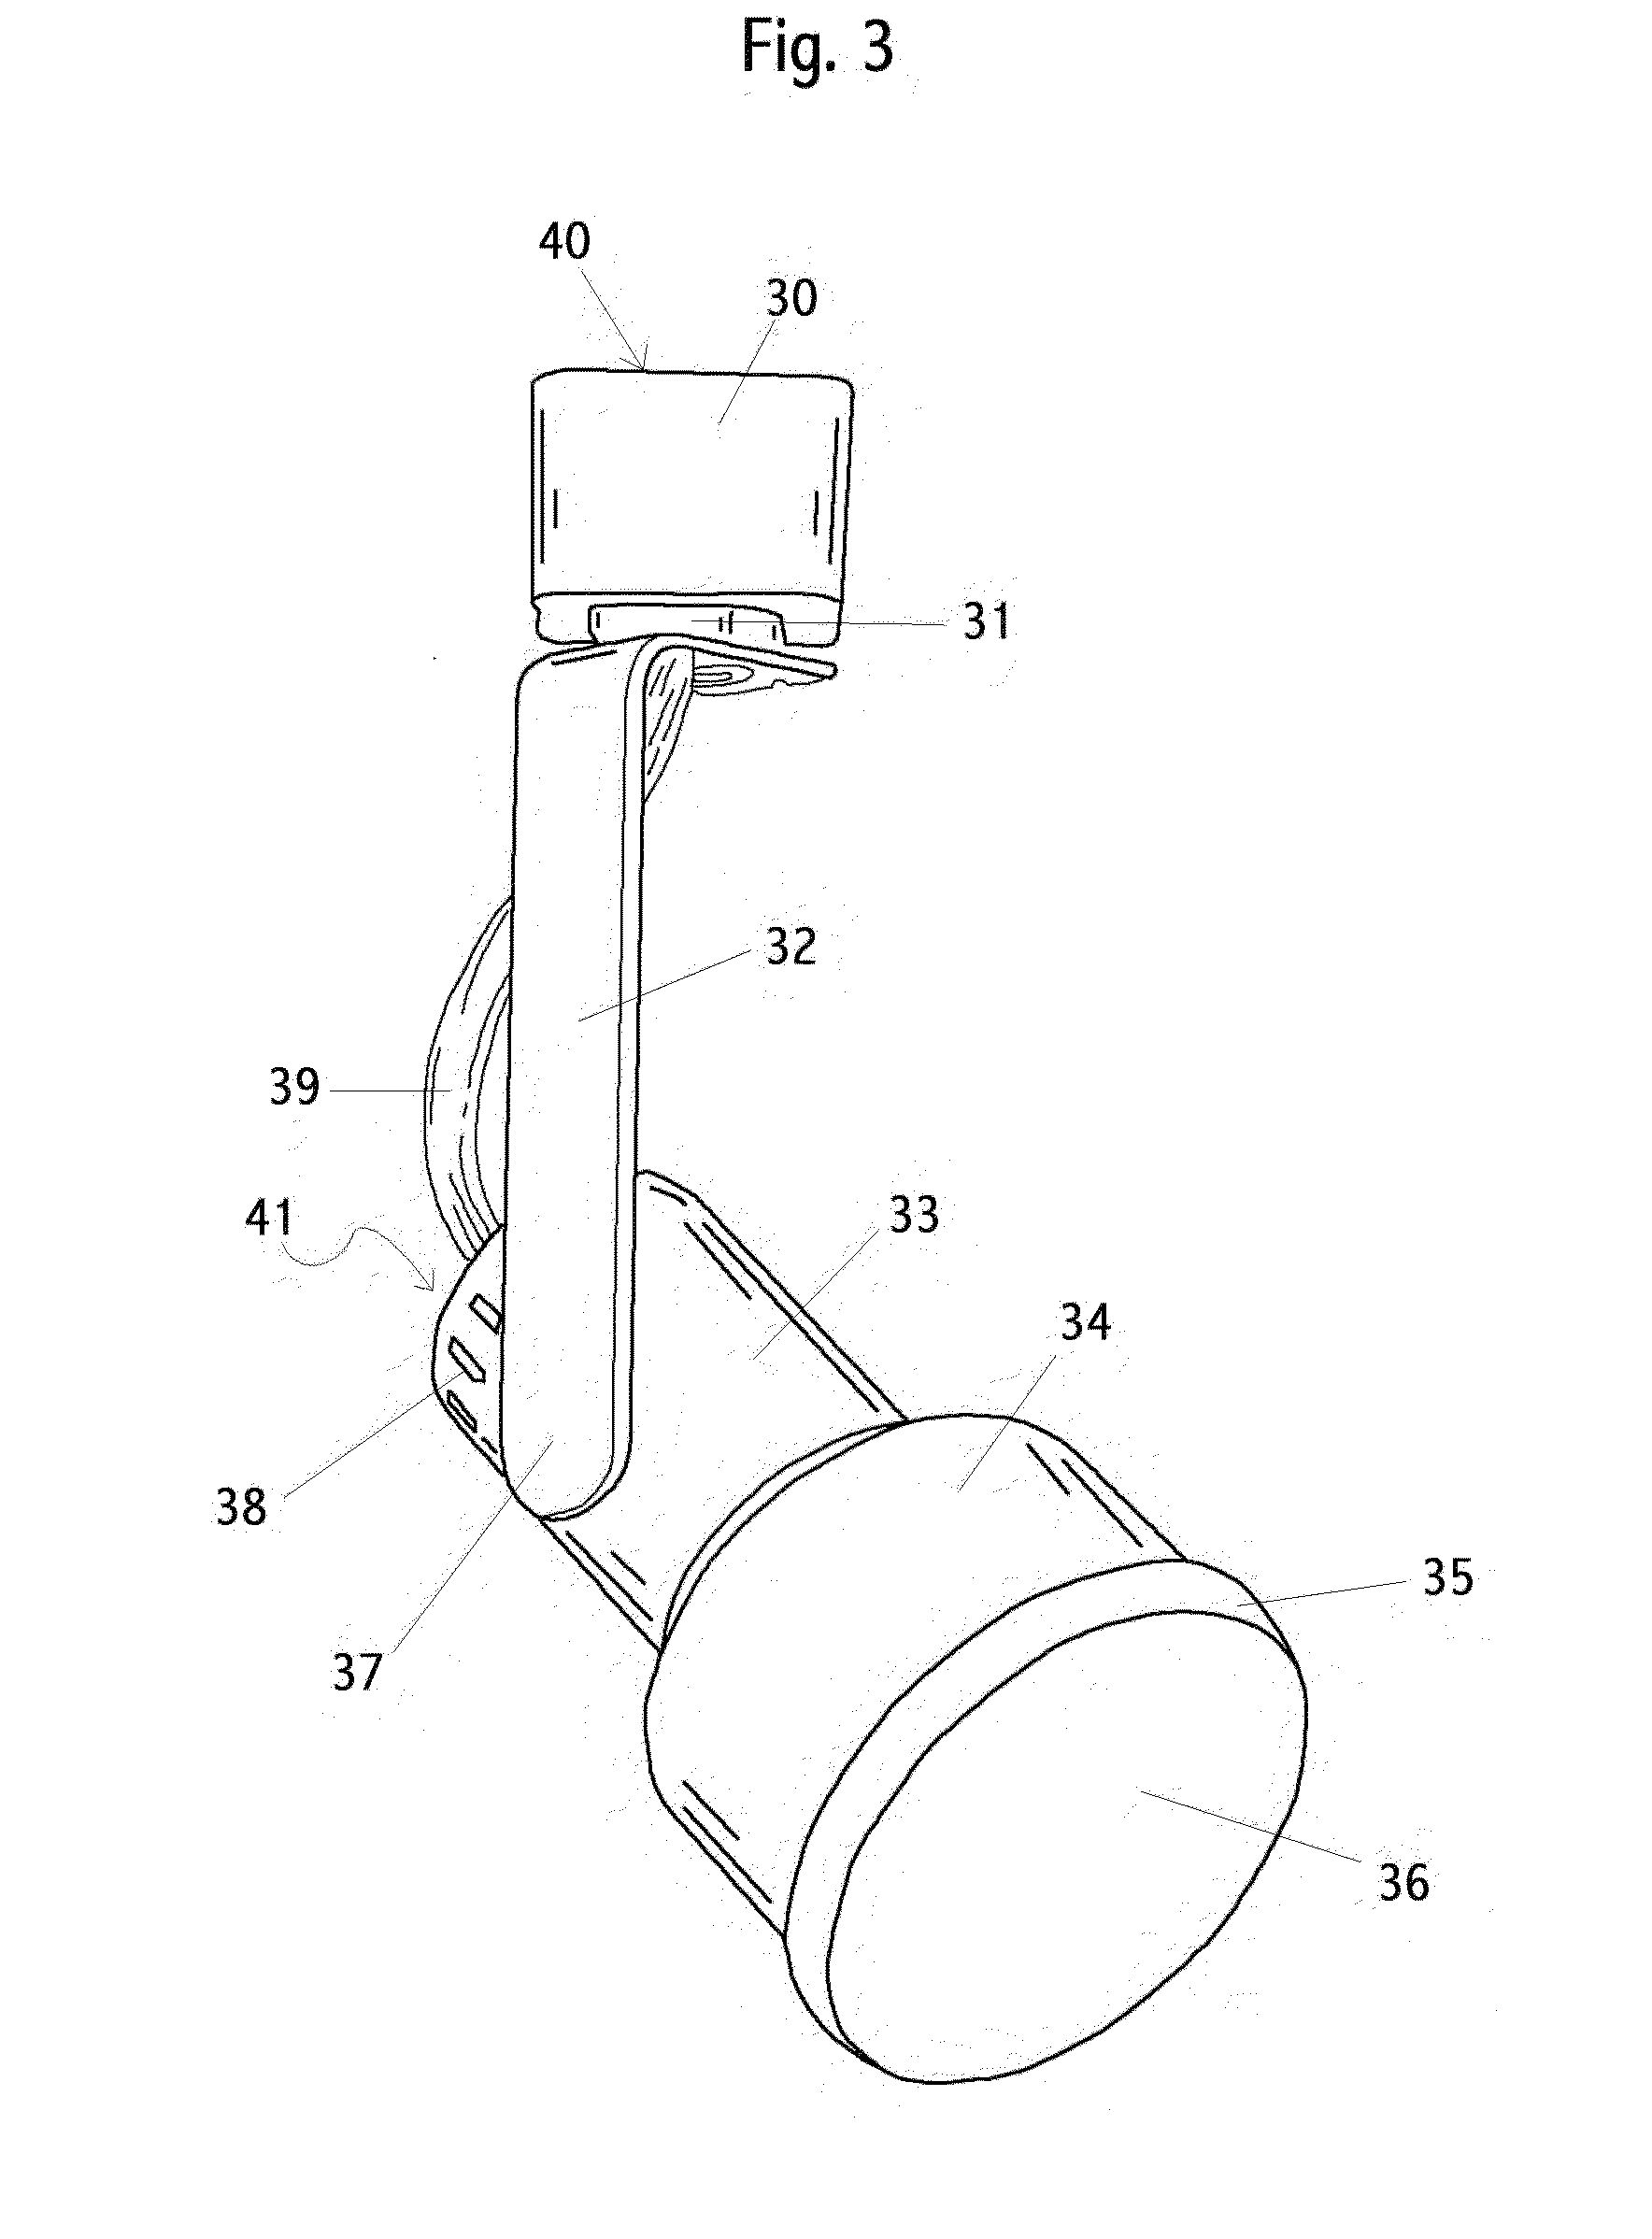 brevet us20140055611 track mount wireless camera fixture Poe Connections Diagram patent drawing